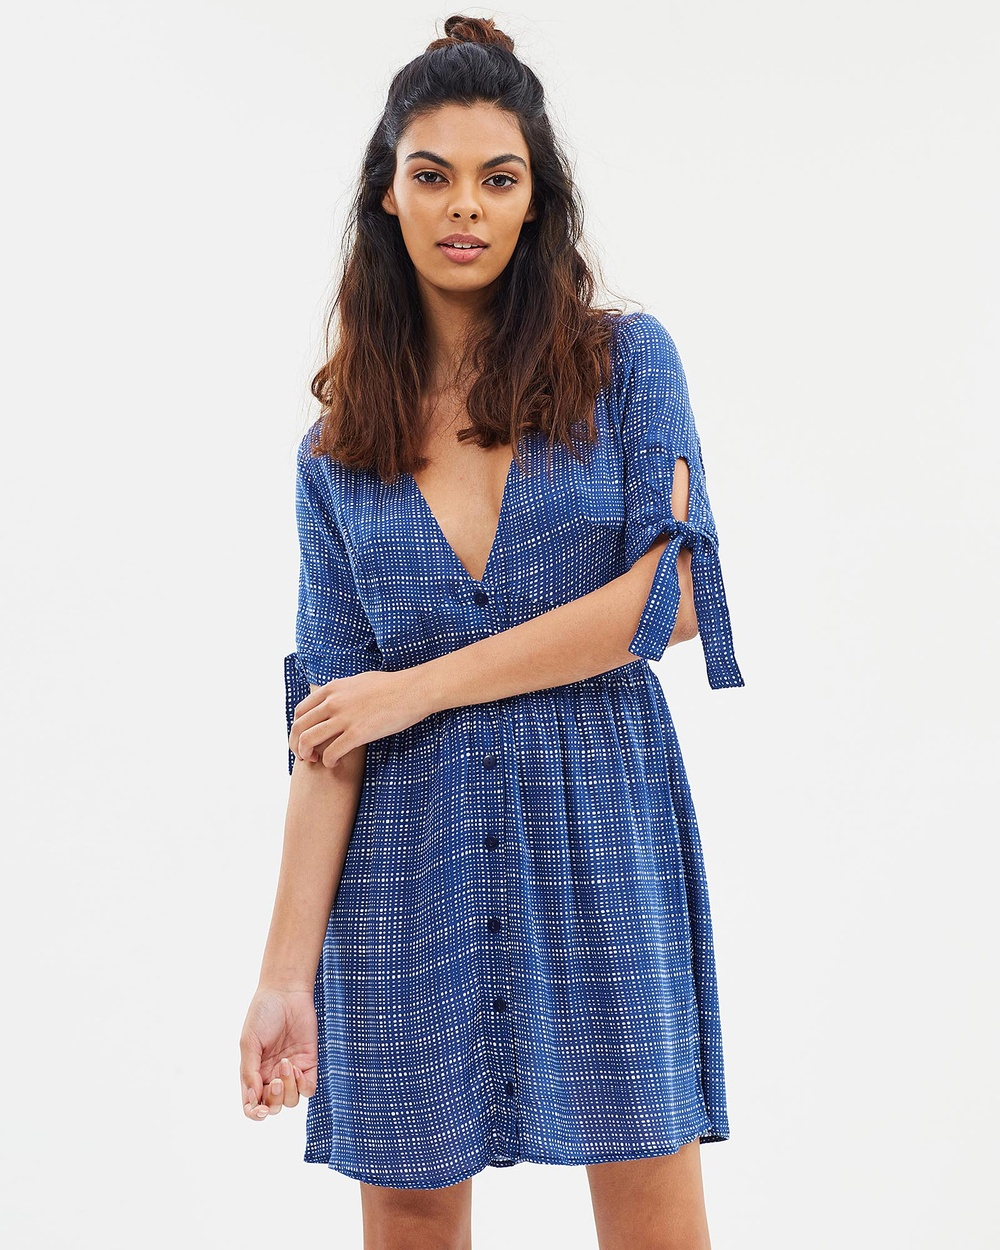 Lilya Ida Mini Dress Dresses Navy Check Ida Mini Dress